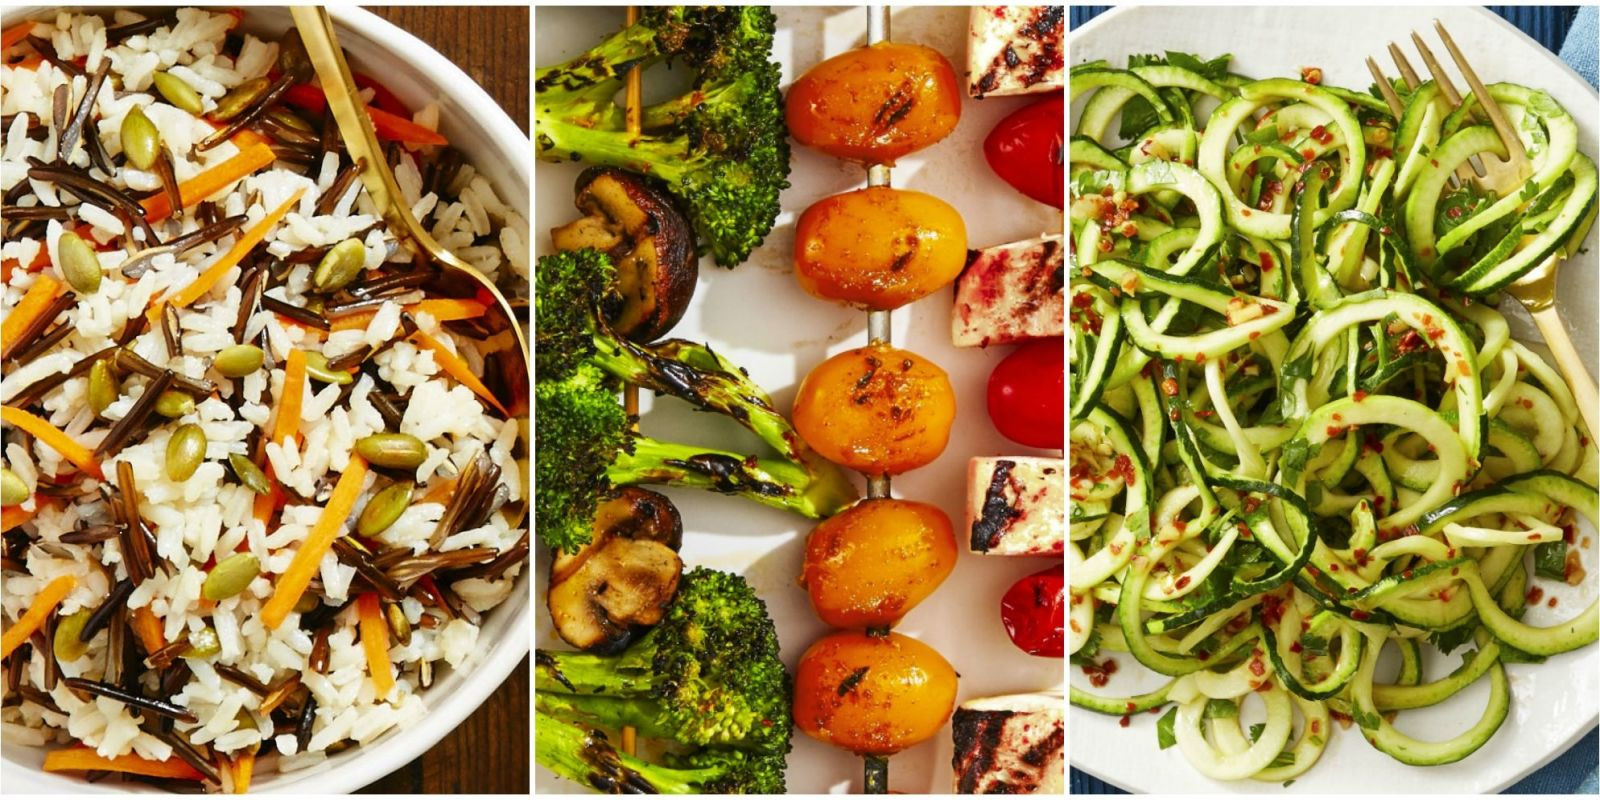 Healthy Side Dishes 15 Healthy Side Dishes Easy Recipes for Low Calorie Sides